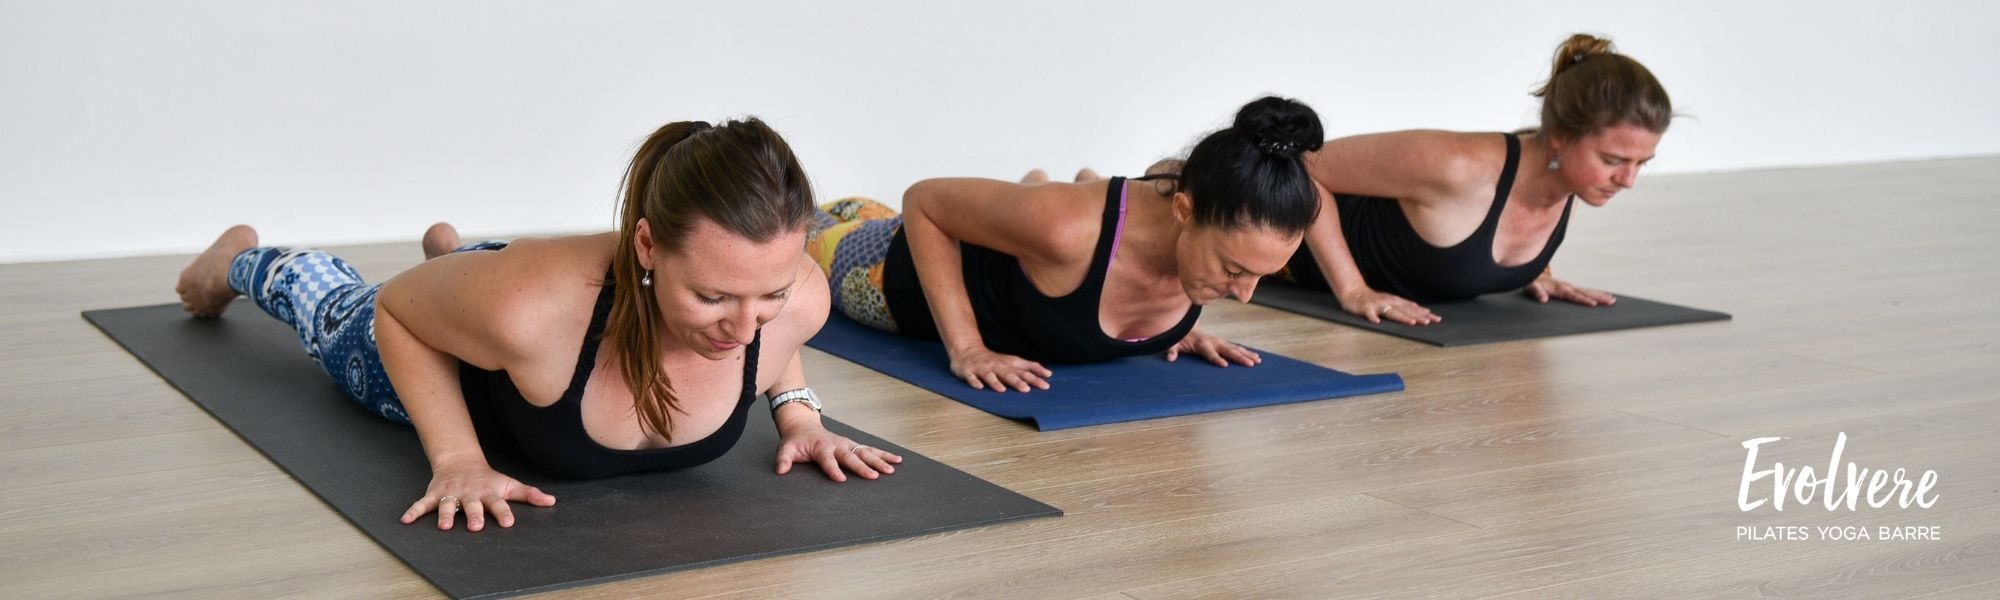 Pilates for Pelvic floor and Abdominal Strength after having a baby at Evolvere in Lane Cove